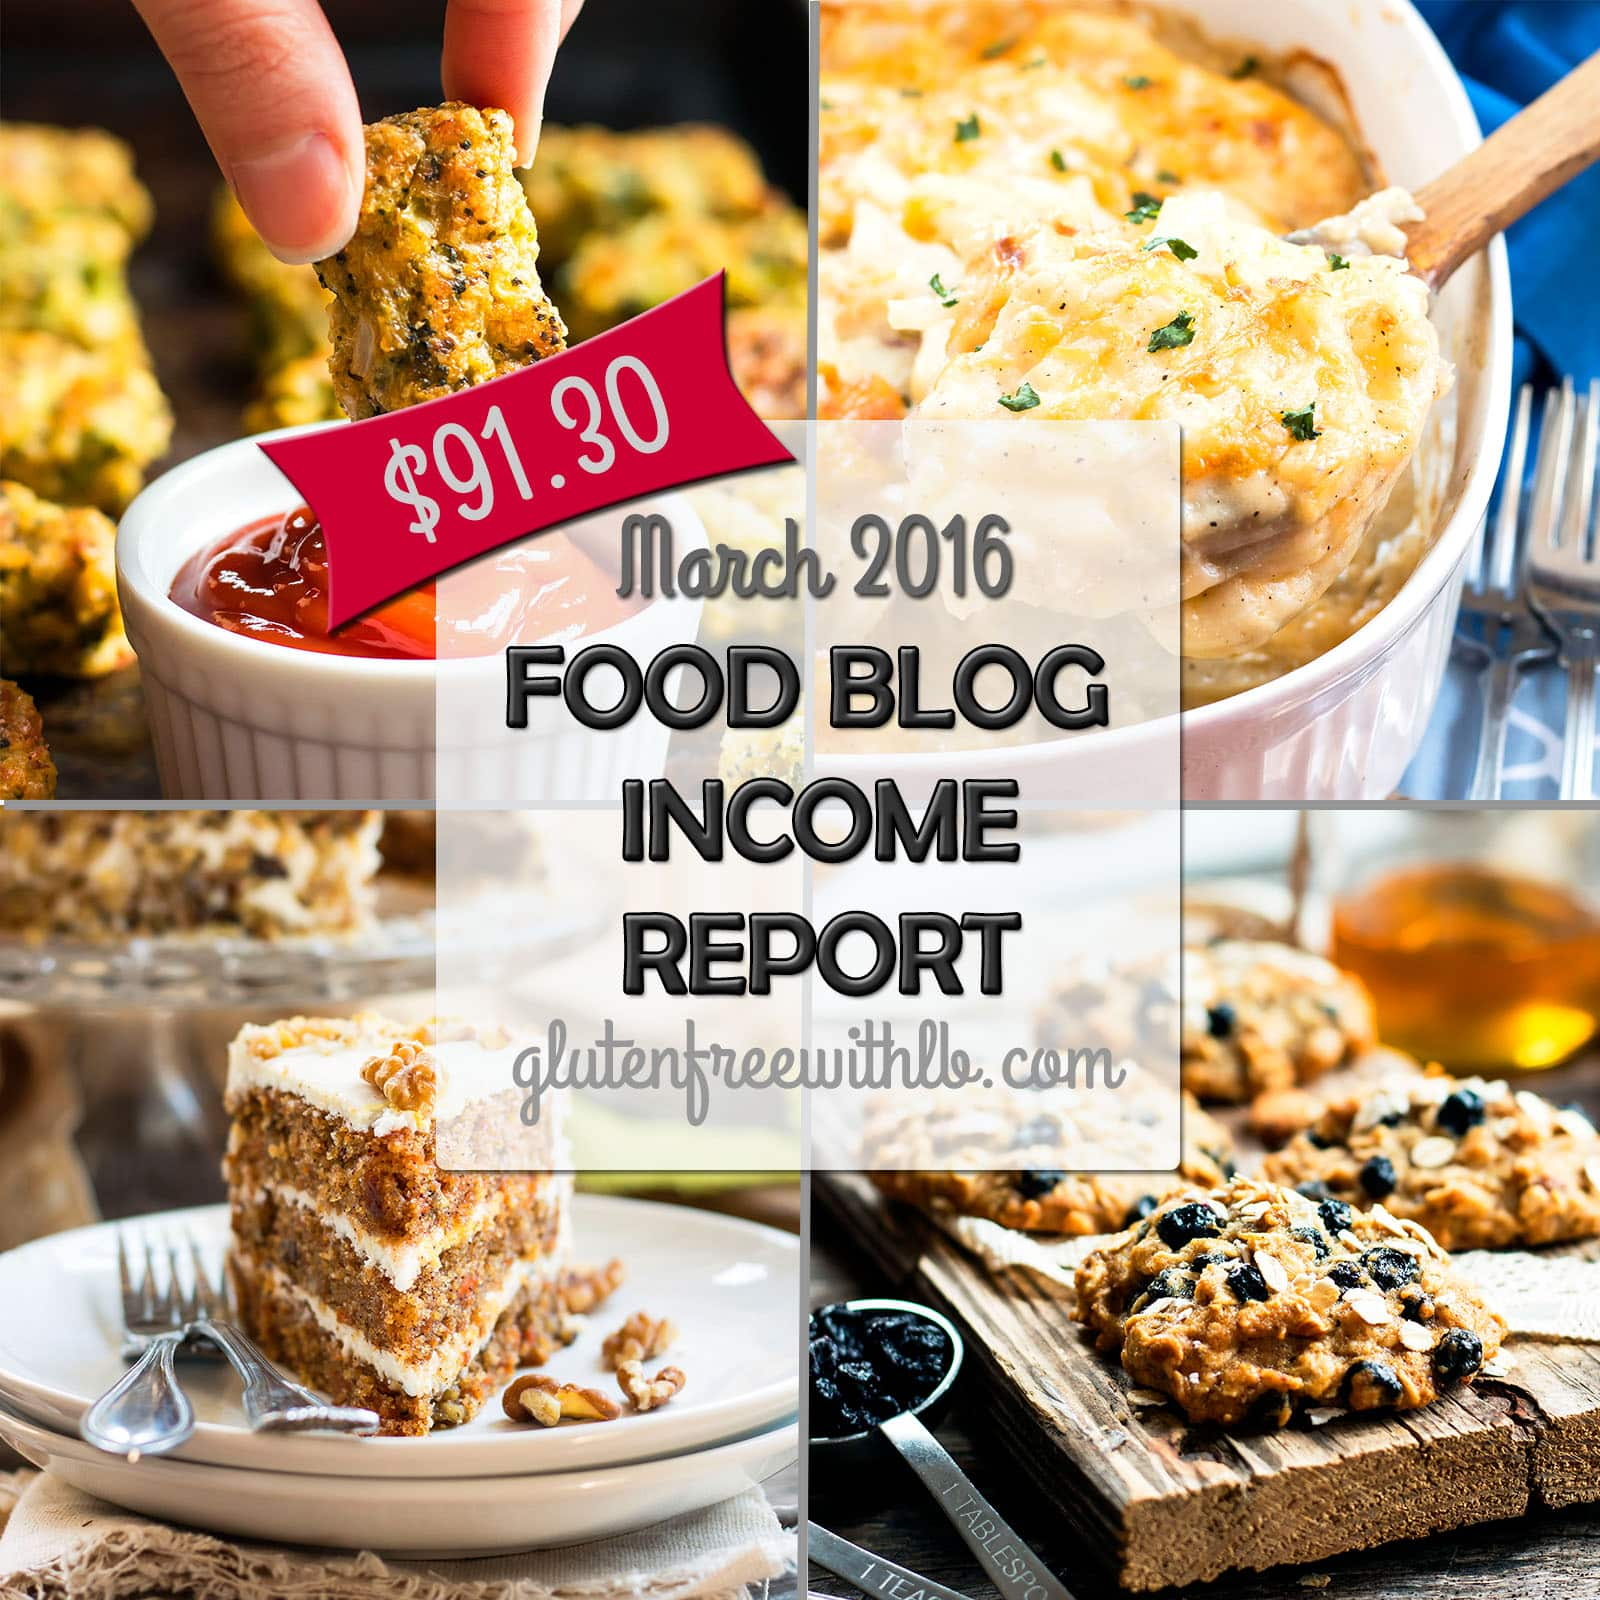 Food Blog Income Report | March 2016